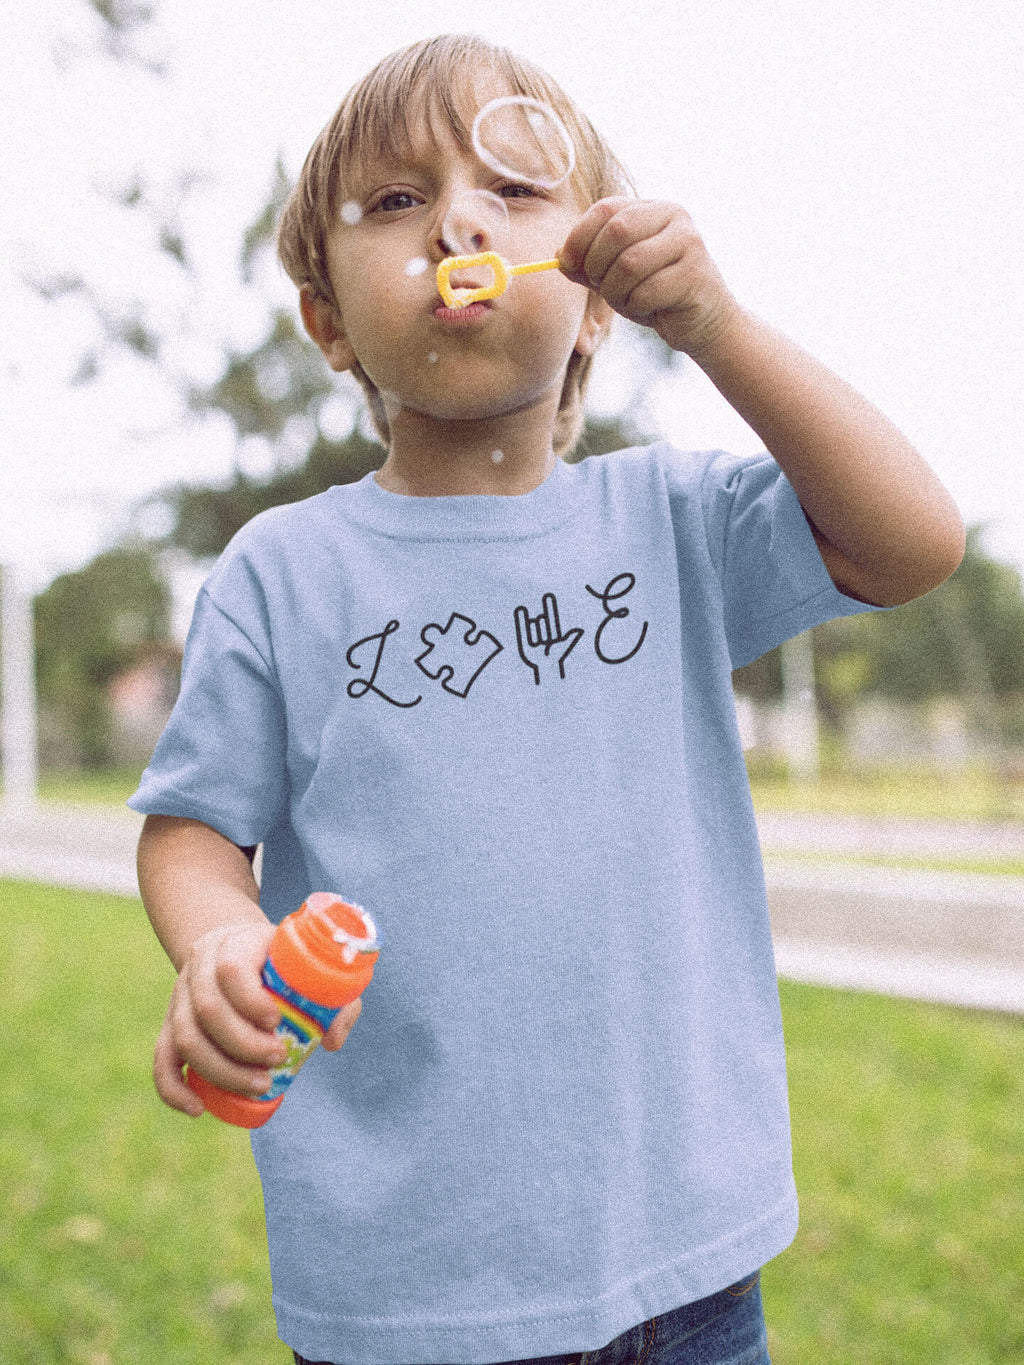 Boy Blowing Bubbles Wearing Love Autism T-Shirt